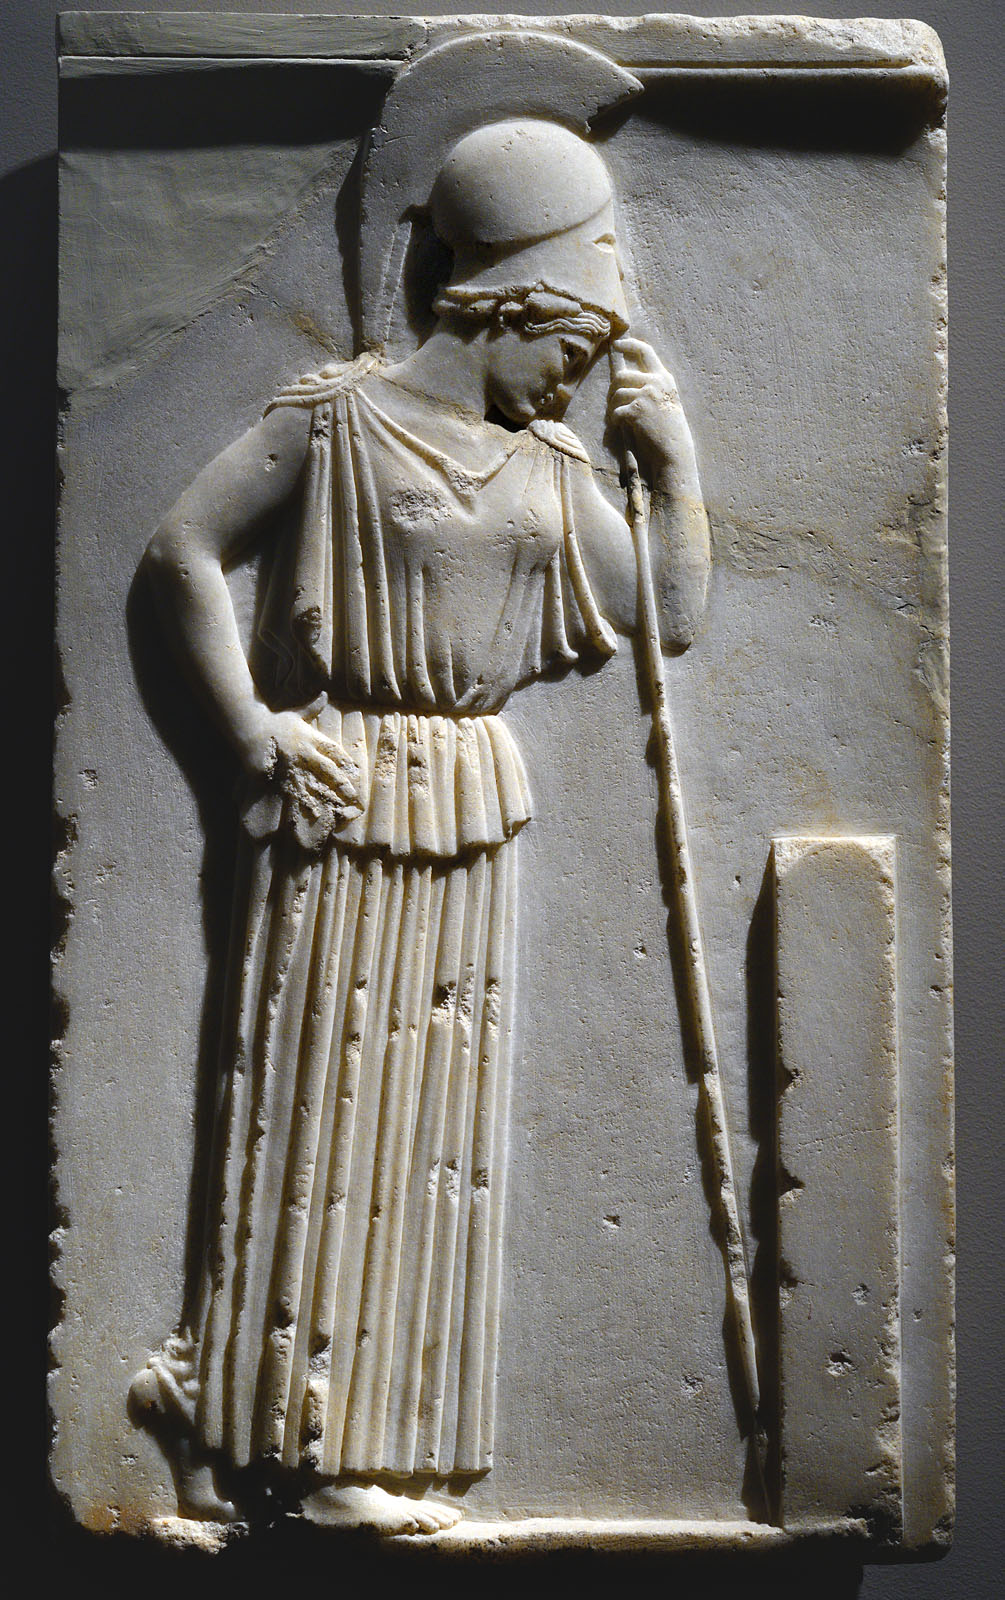 The Mourning Athene. Parian marble. 470—460 BCE. Inv. No. 695. Athens, New Acropolis Museum